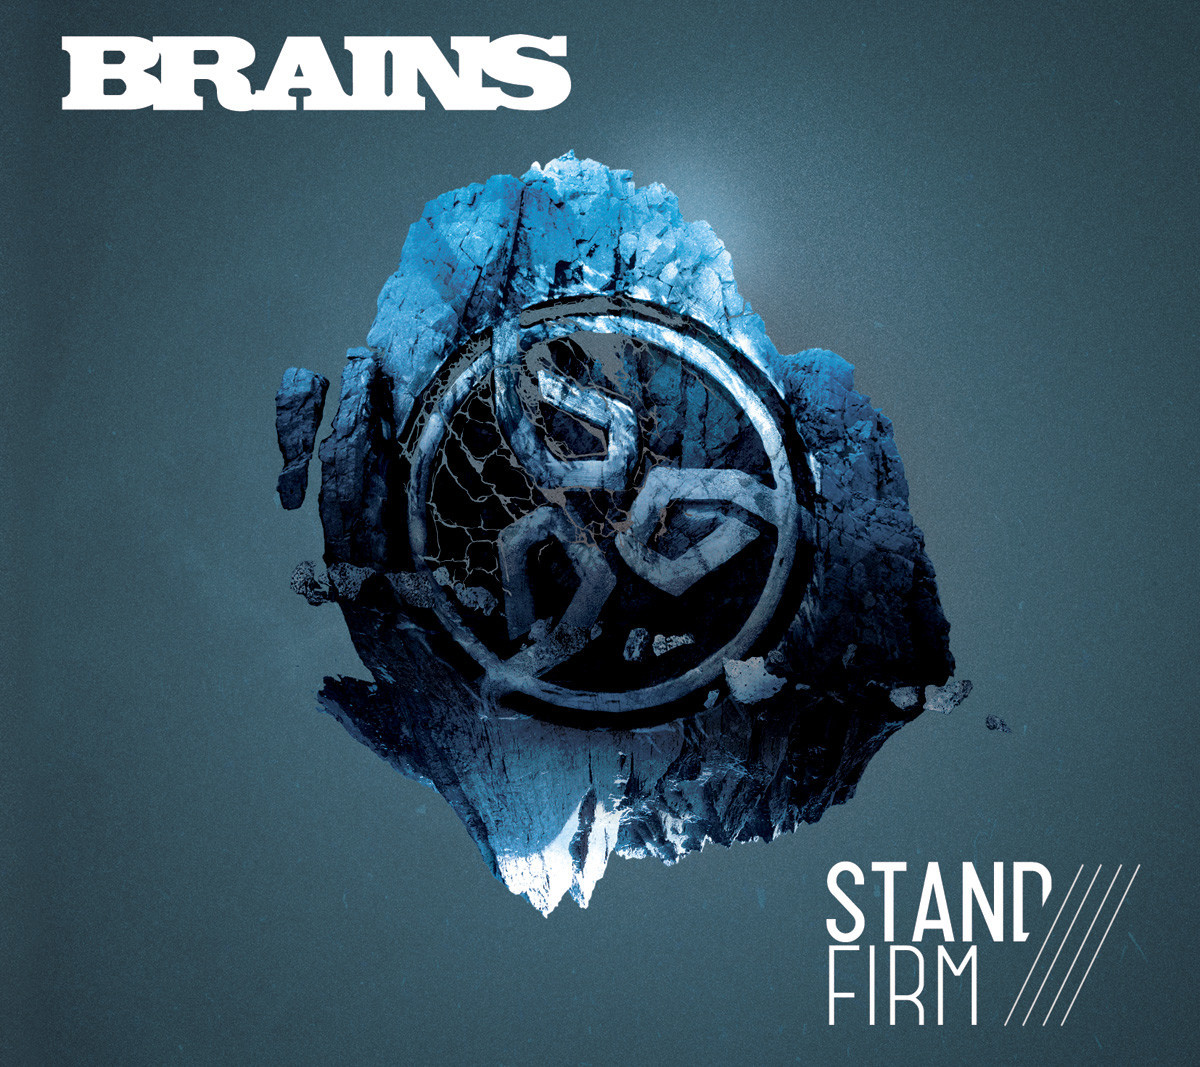 BRAINS /// STAND FIRM - 1 by Lossonczy Bazsó